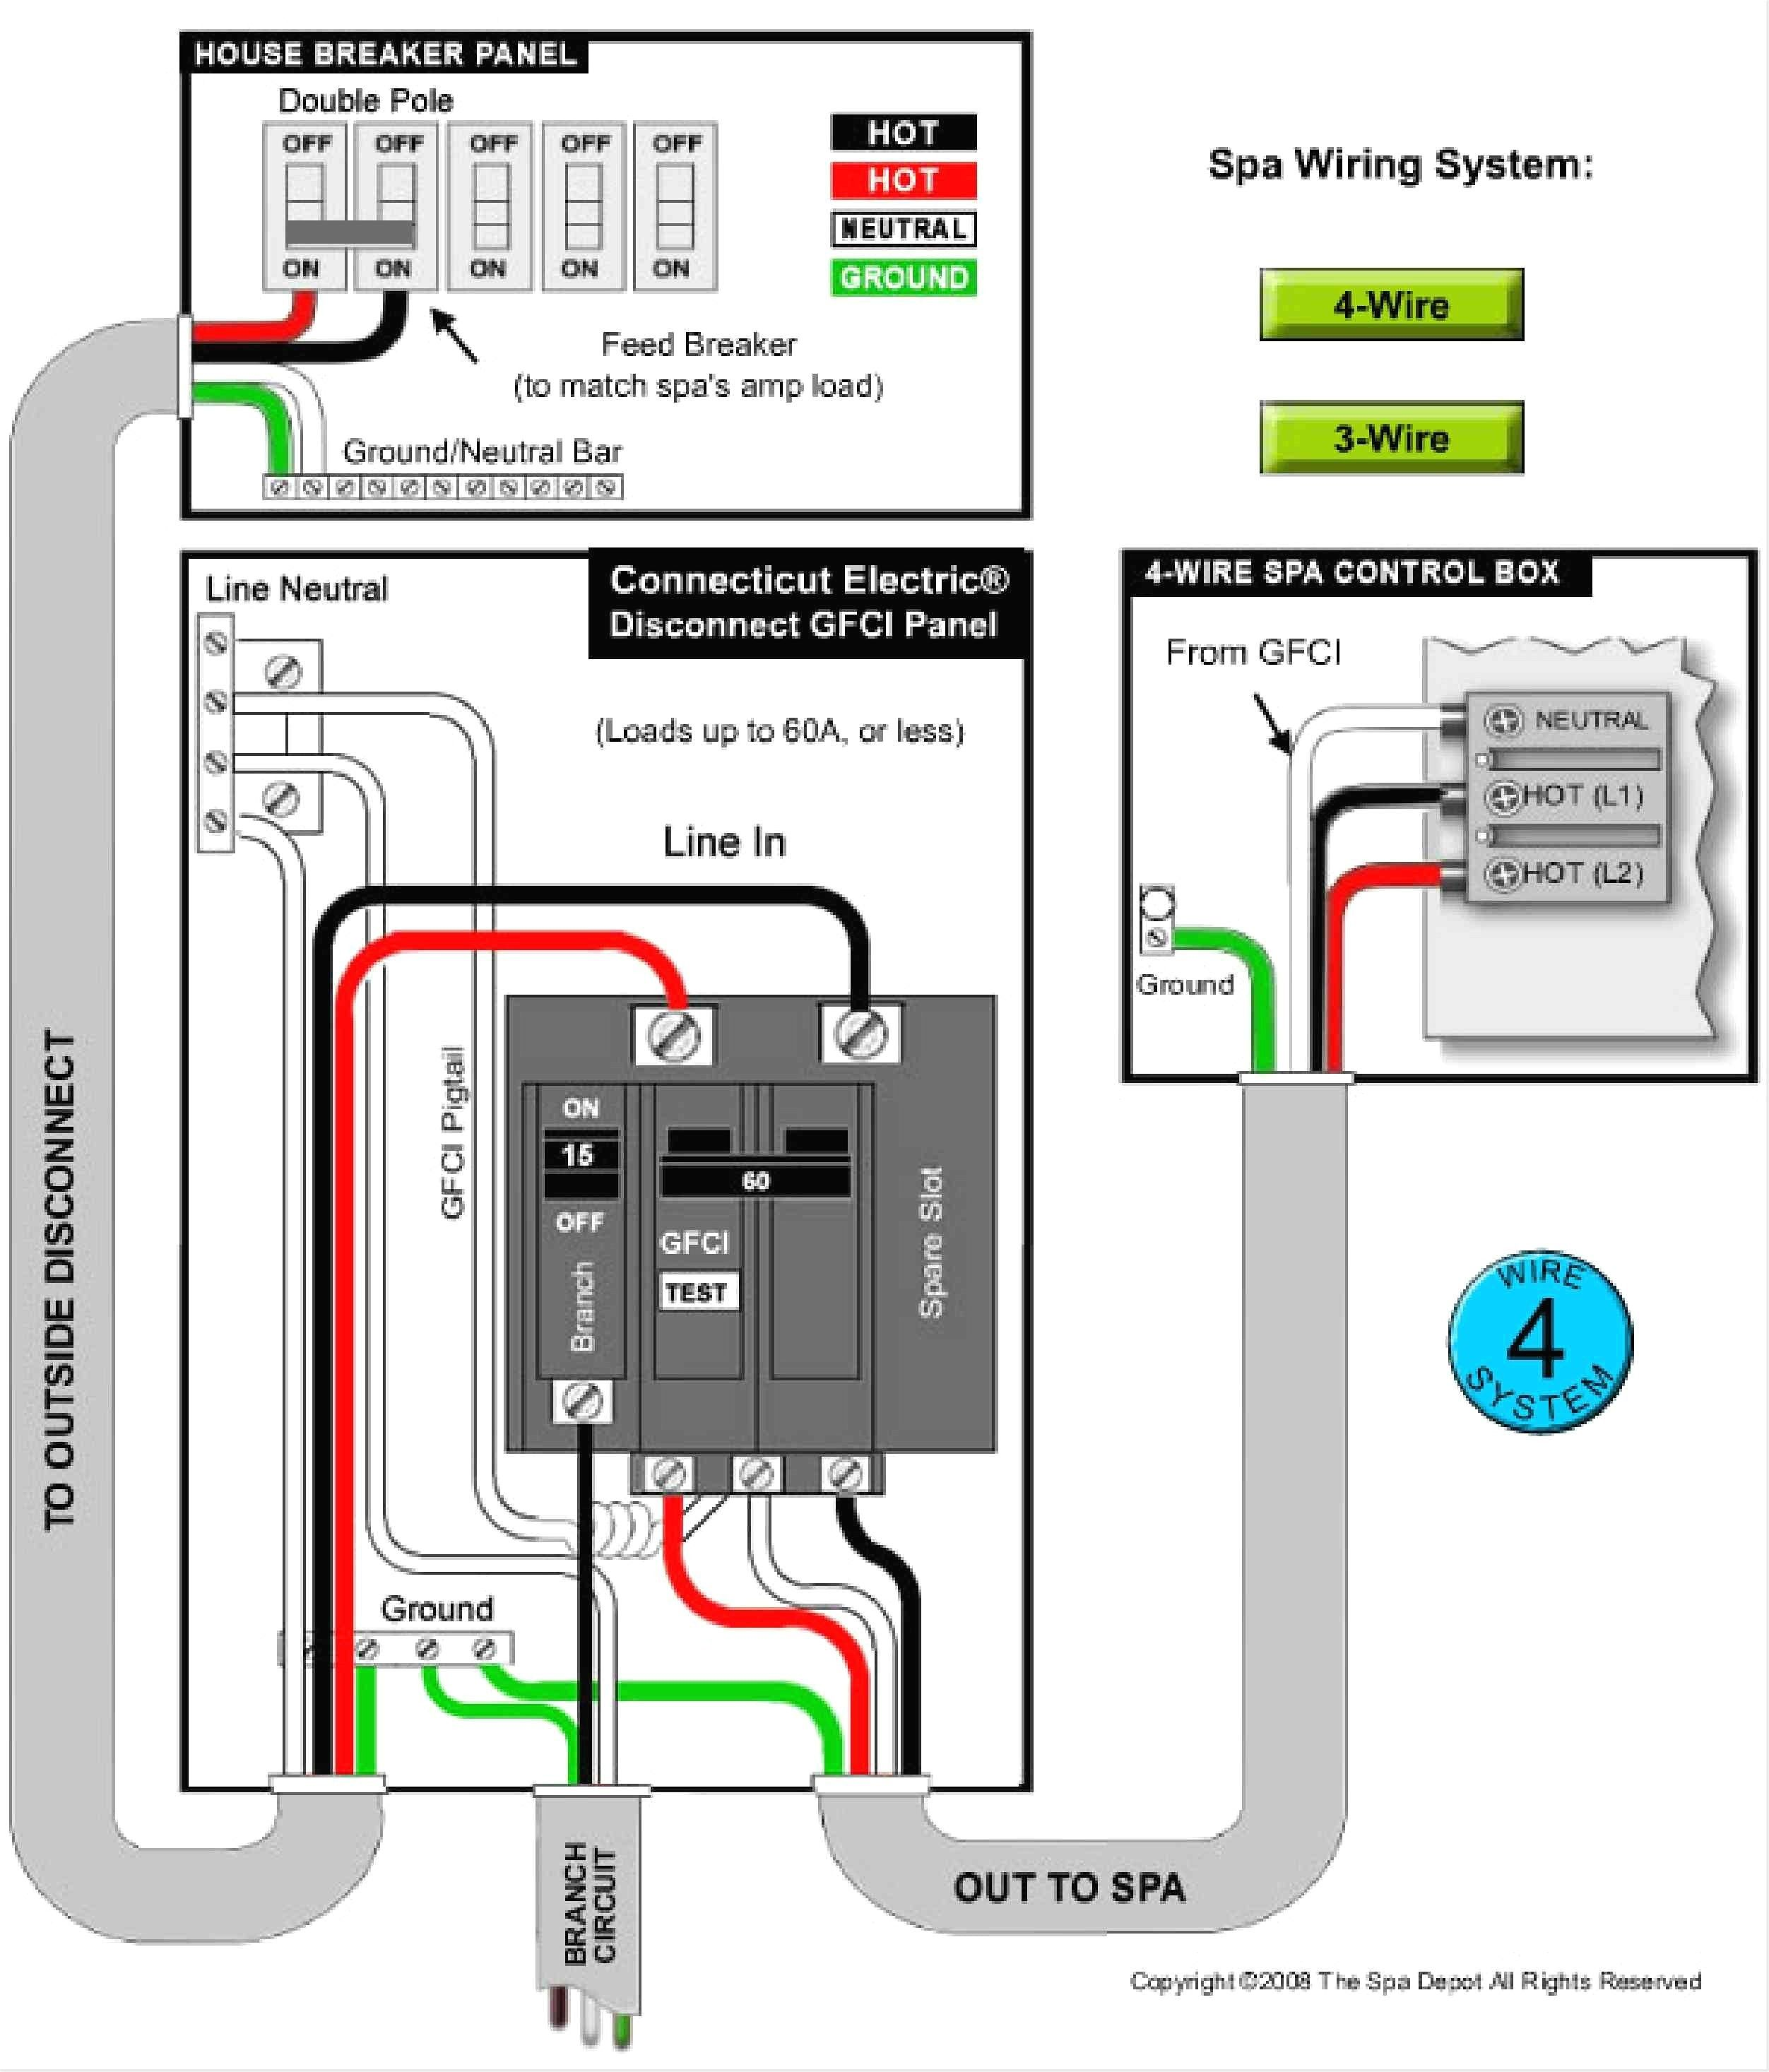 Spa Electrical Diagram - Daily Electronical Wiring Diagram on